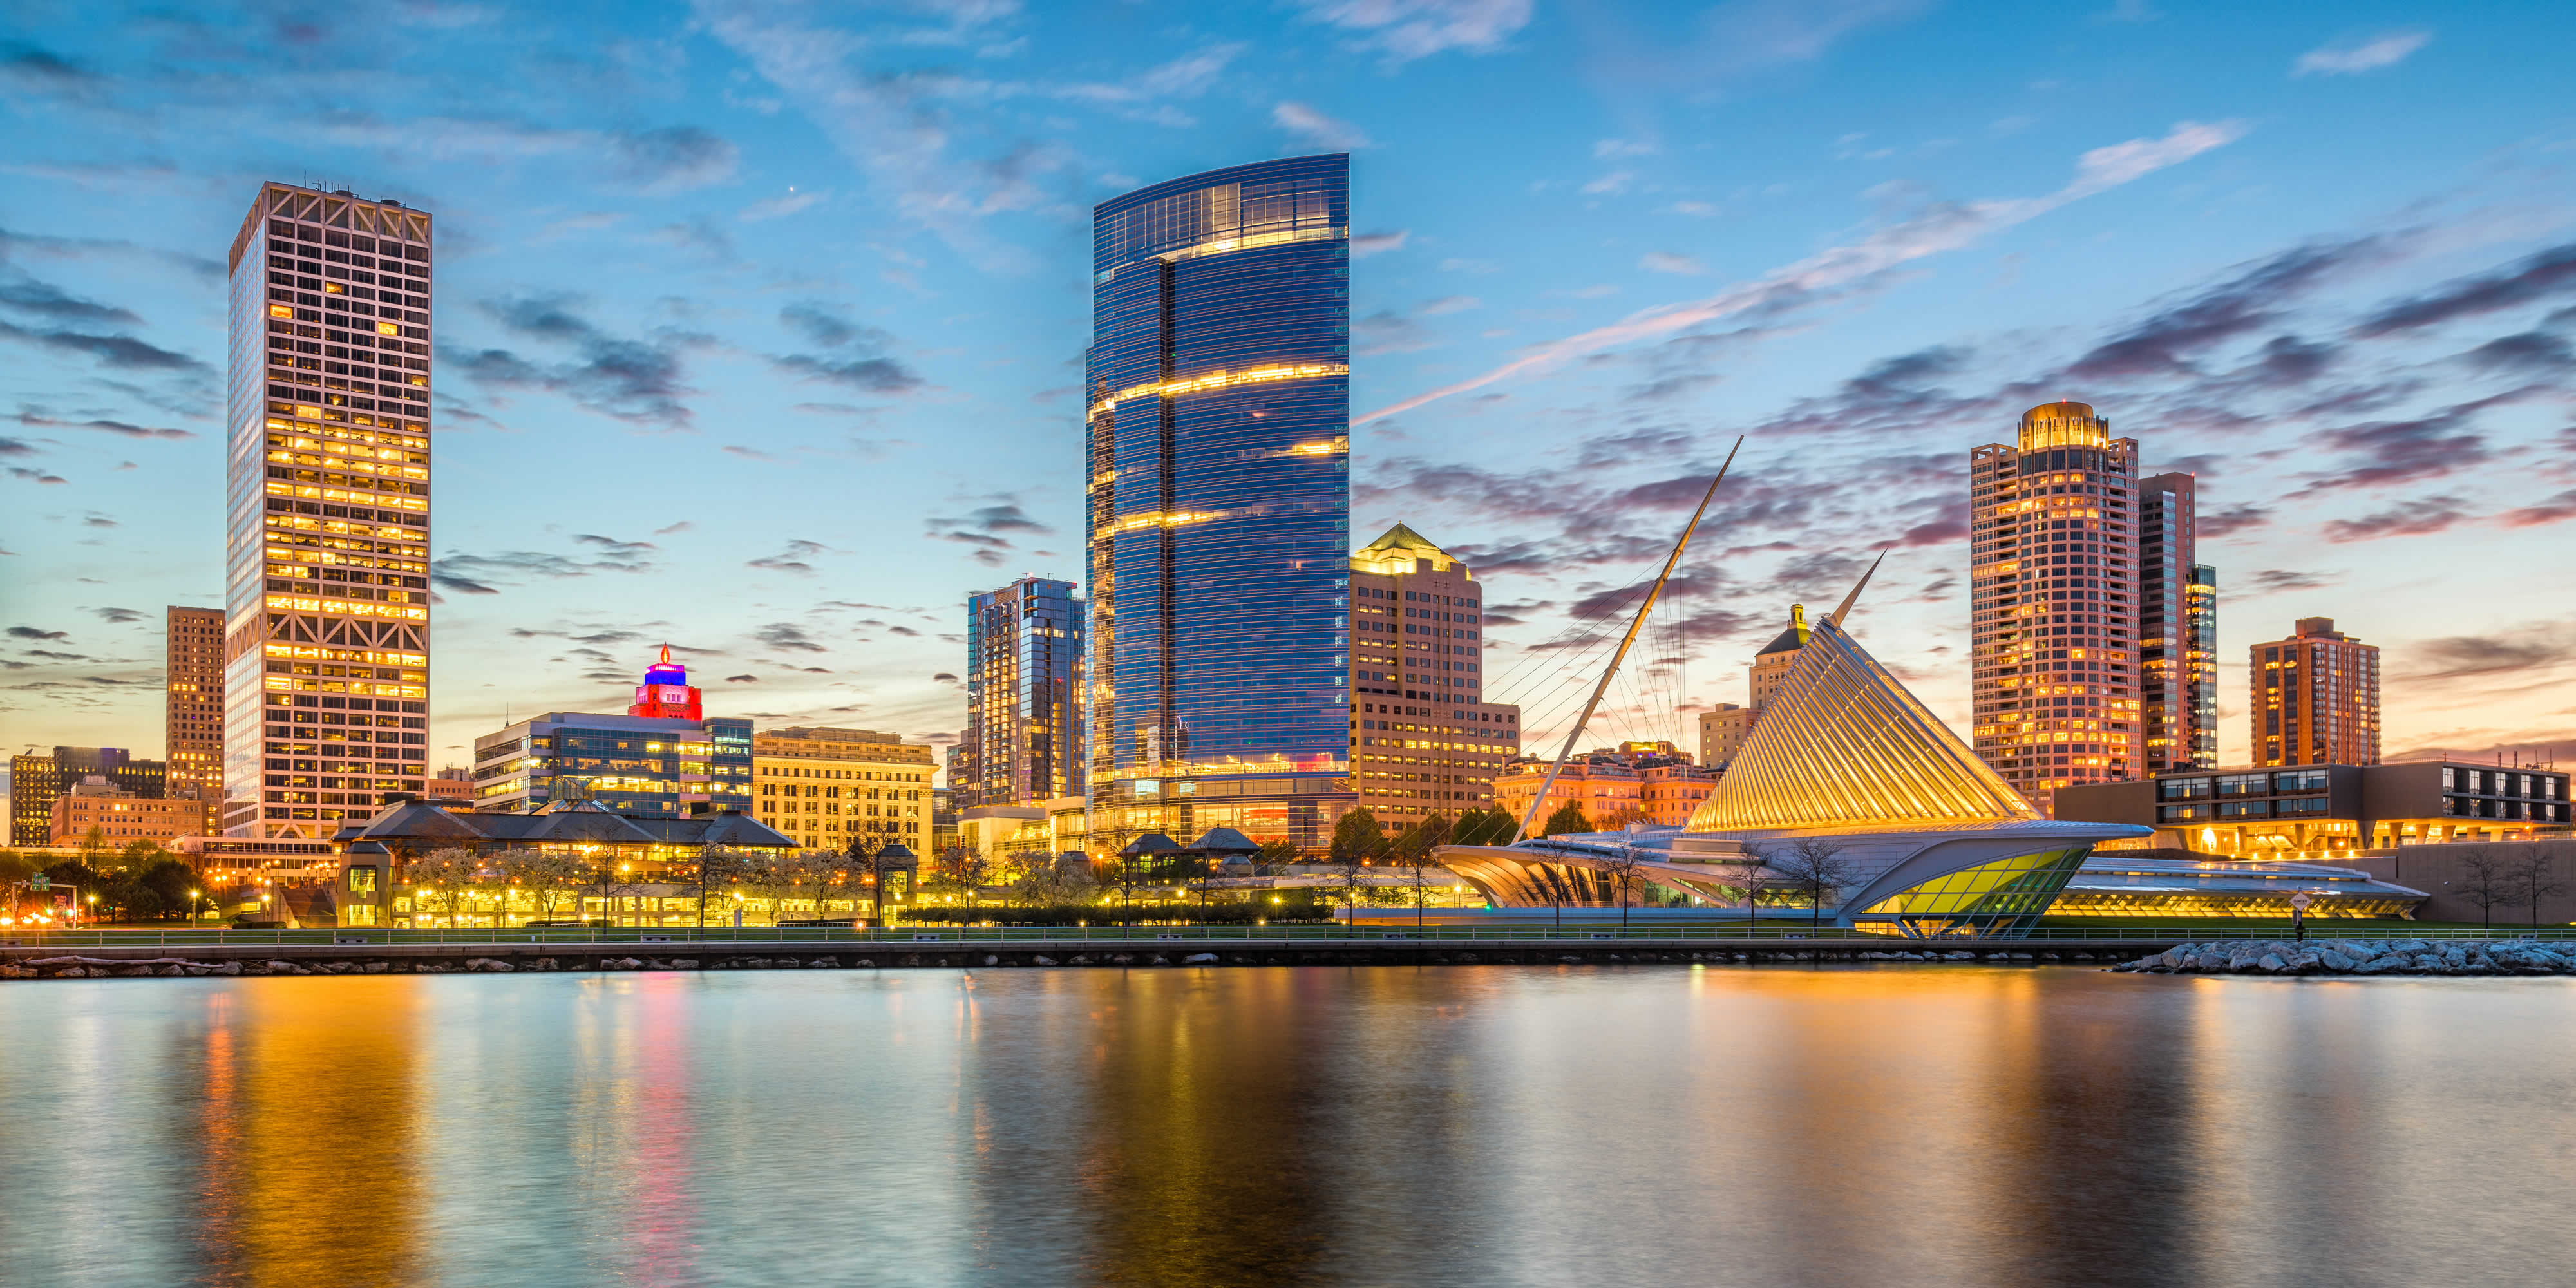 NAEM's Impact conference will be held at the Saint Kate Arts Hotel (formerly the Intercontinental Milwaukee) located in Milwaukee, Wisconsin